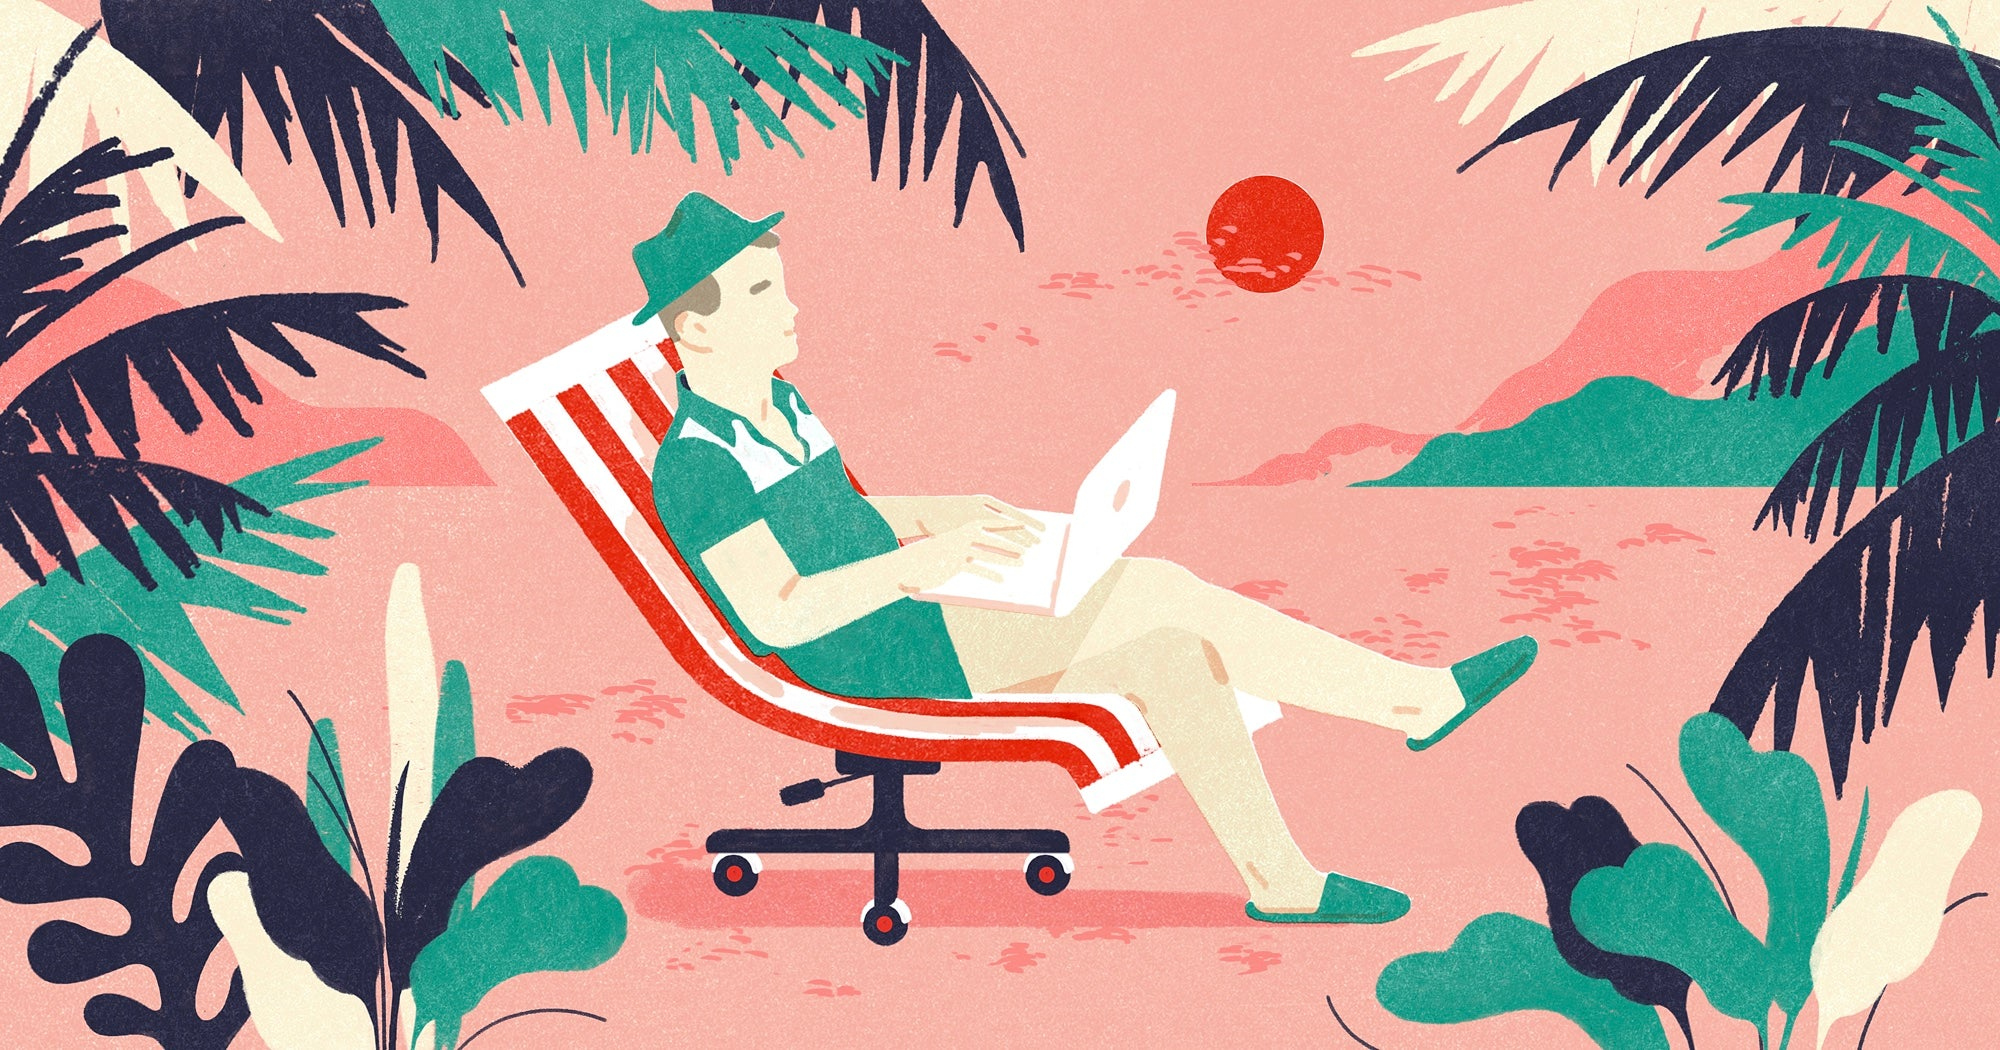 Illustration of a person lounging on an office chair in a beach setting